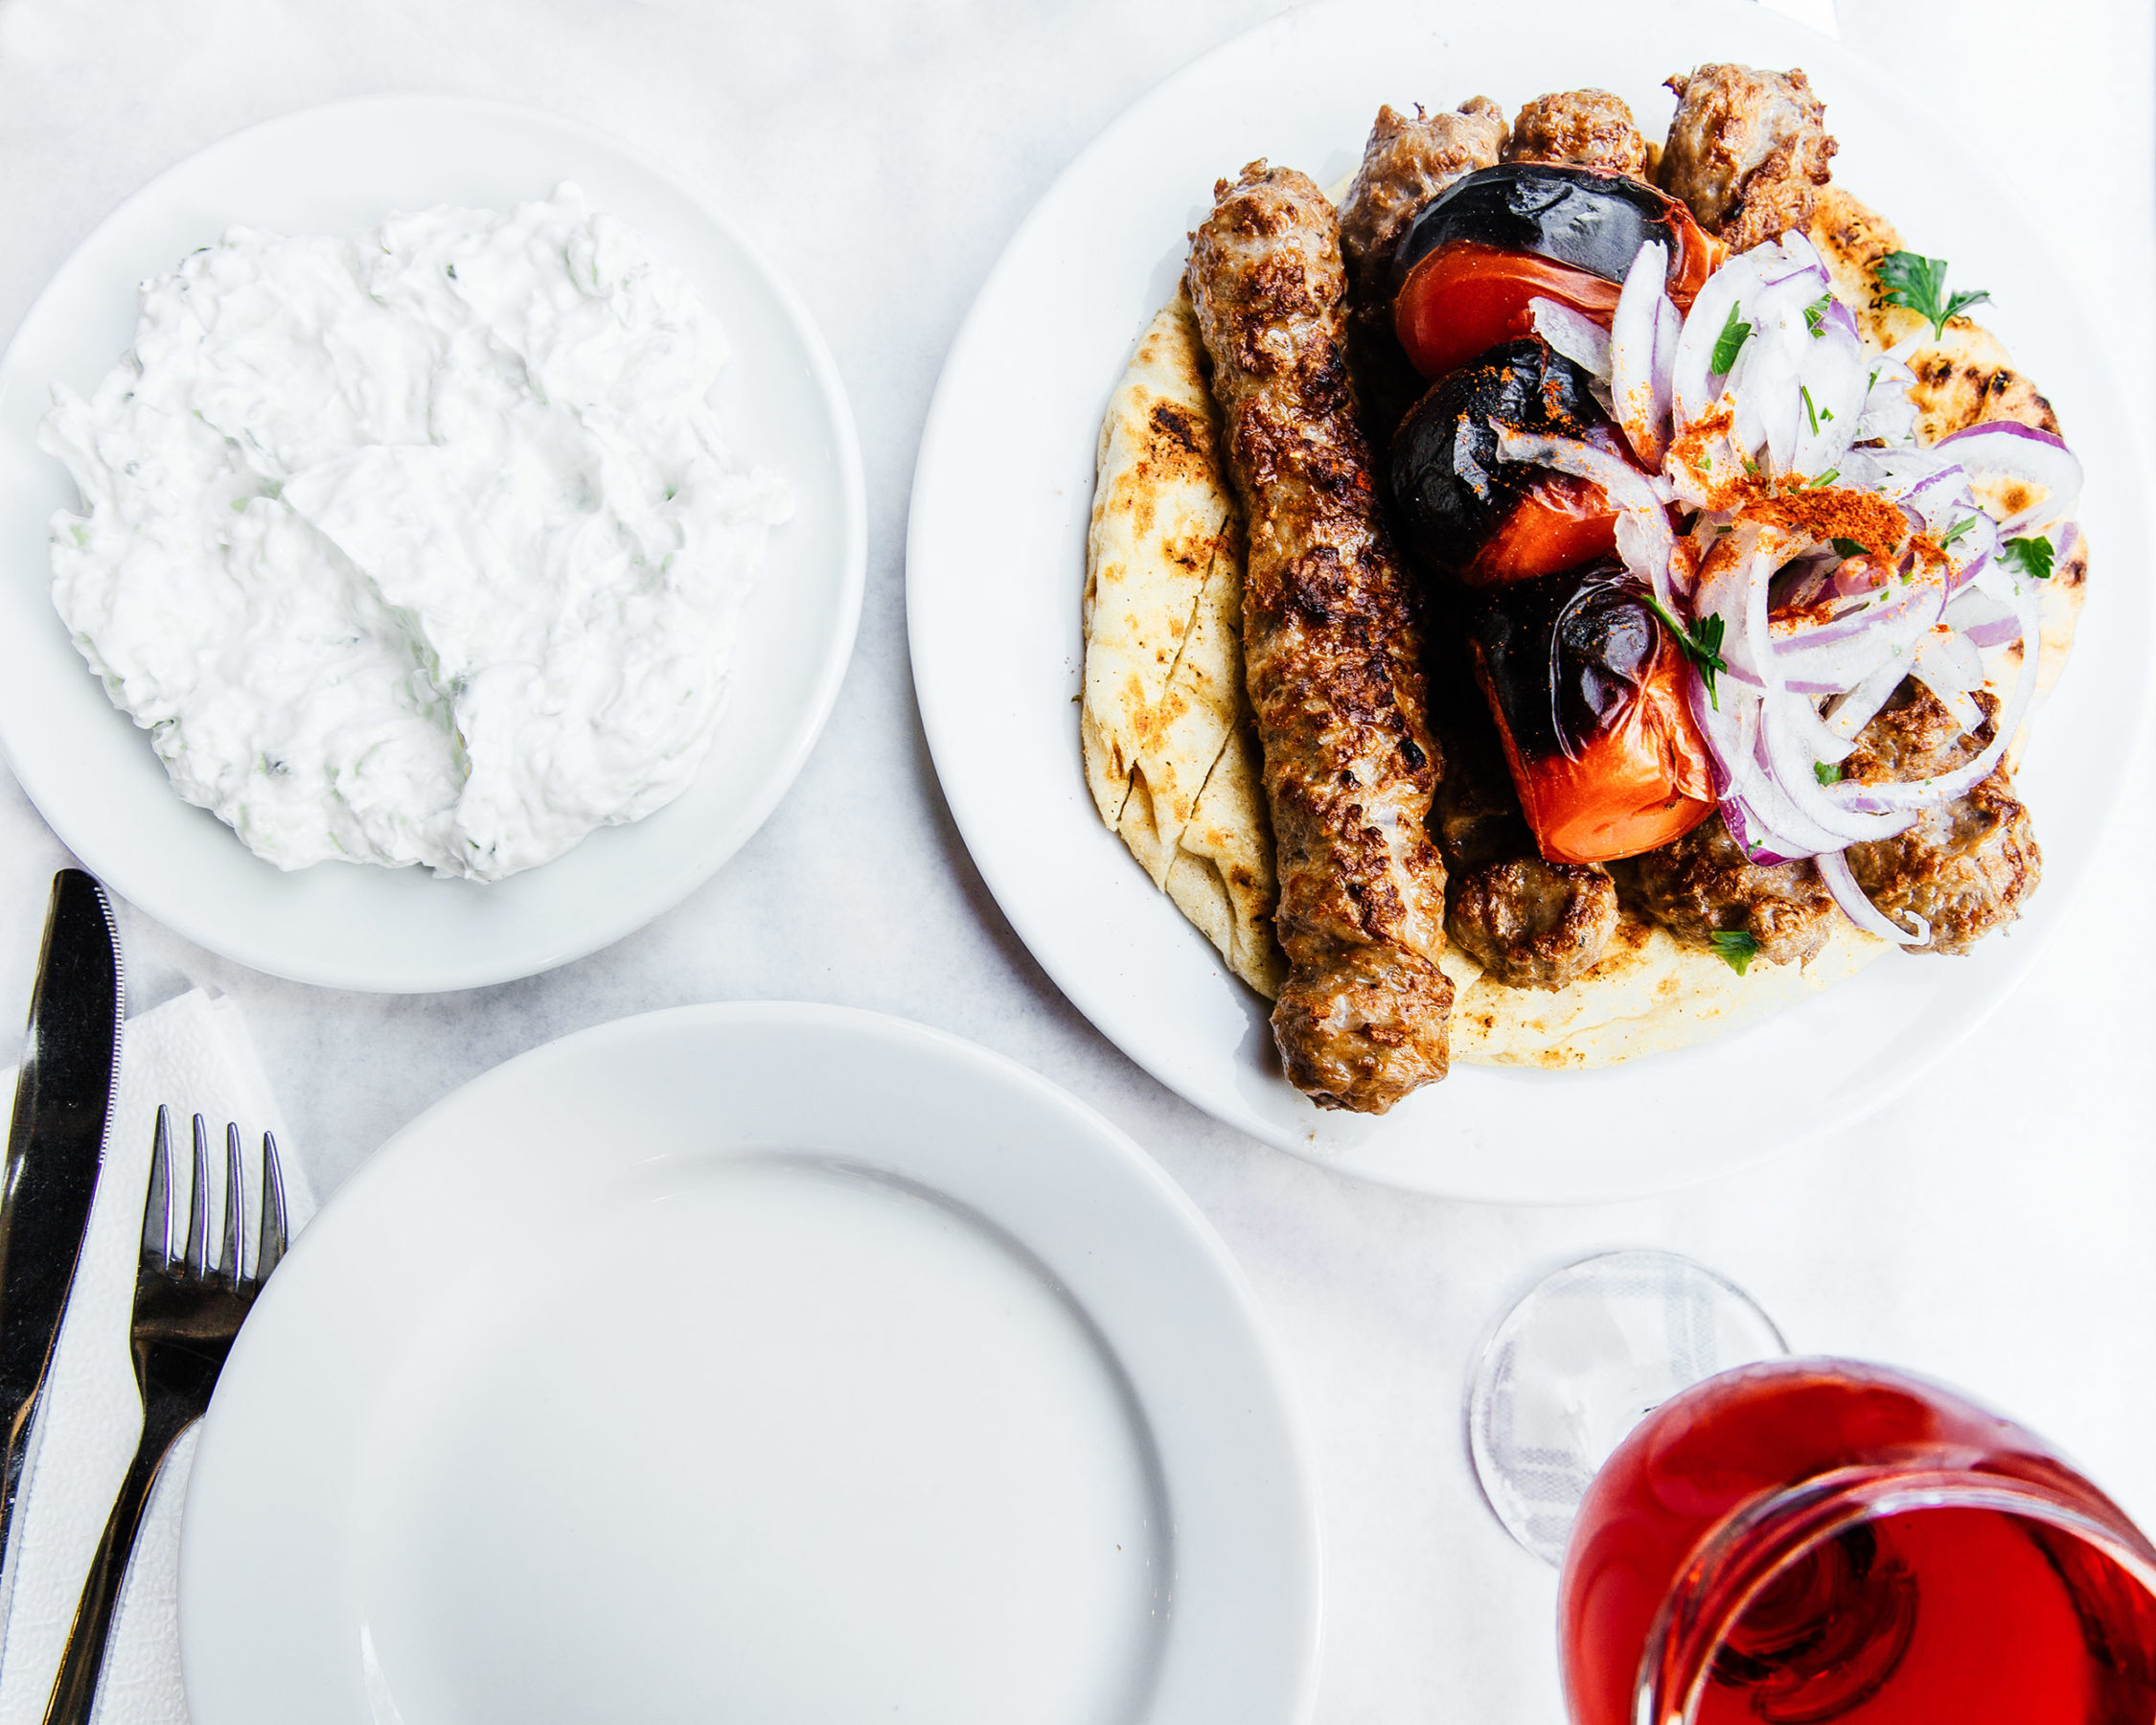 A plate of gyros by some tzatziki in another plate and a glass of wine